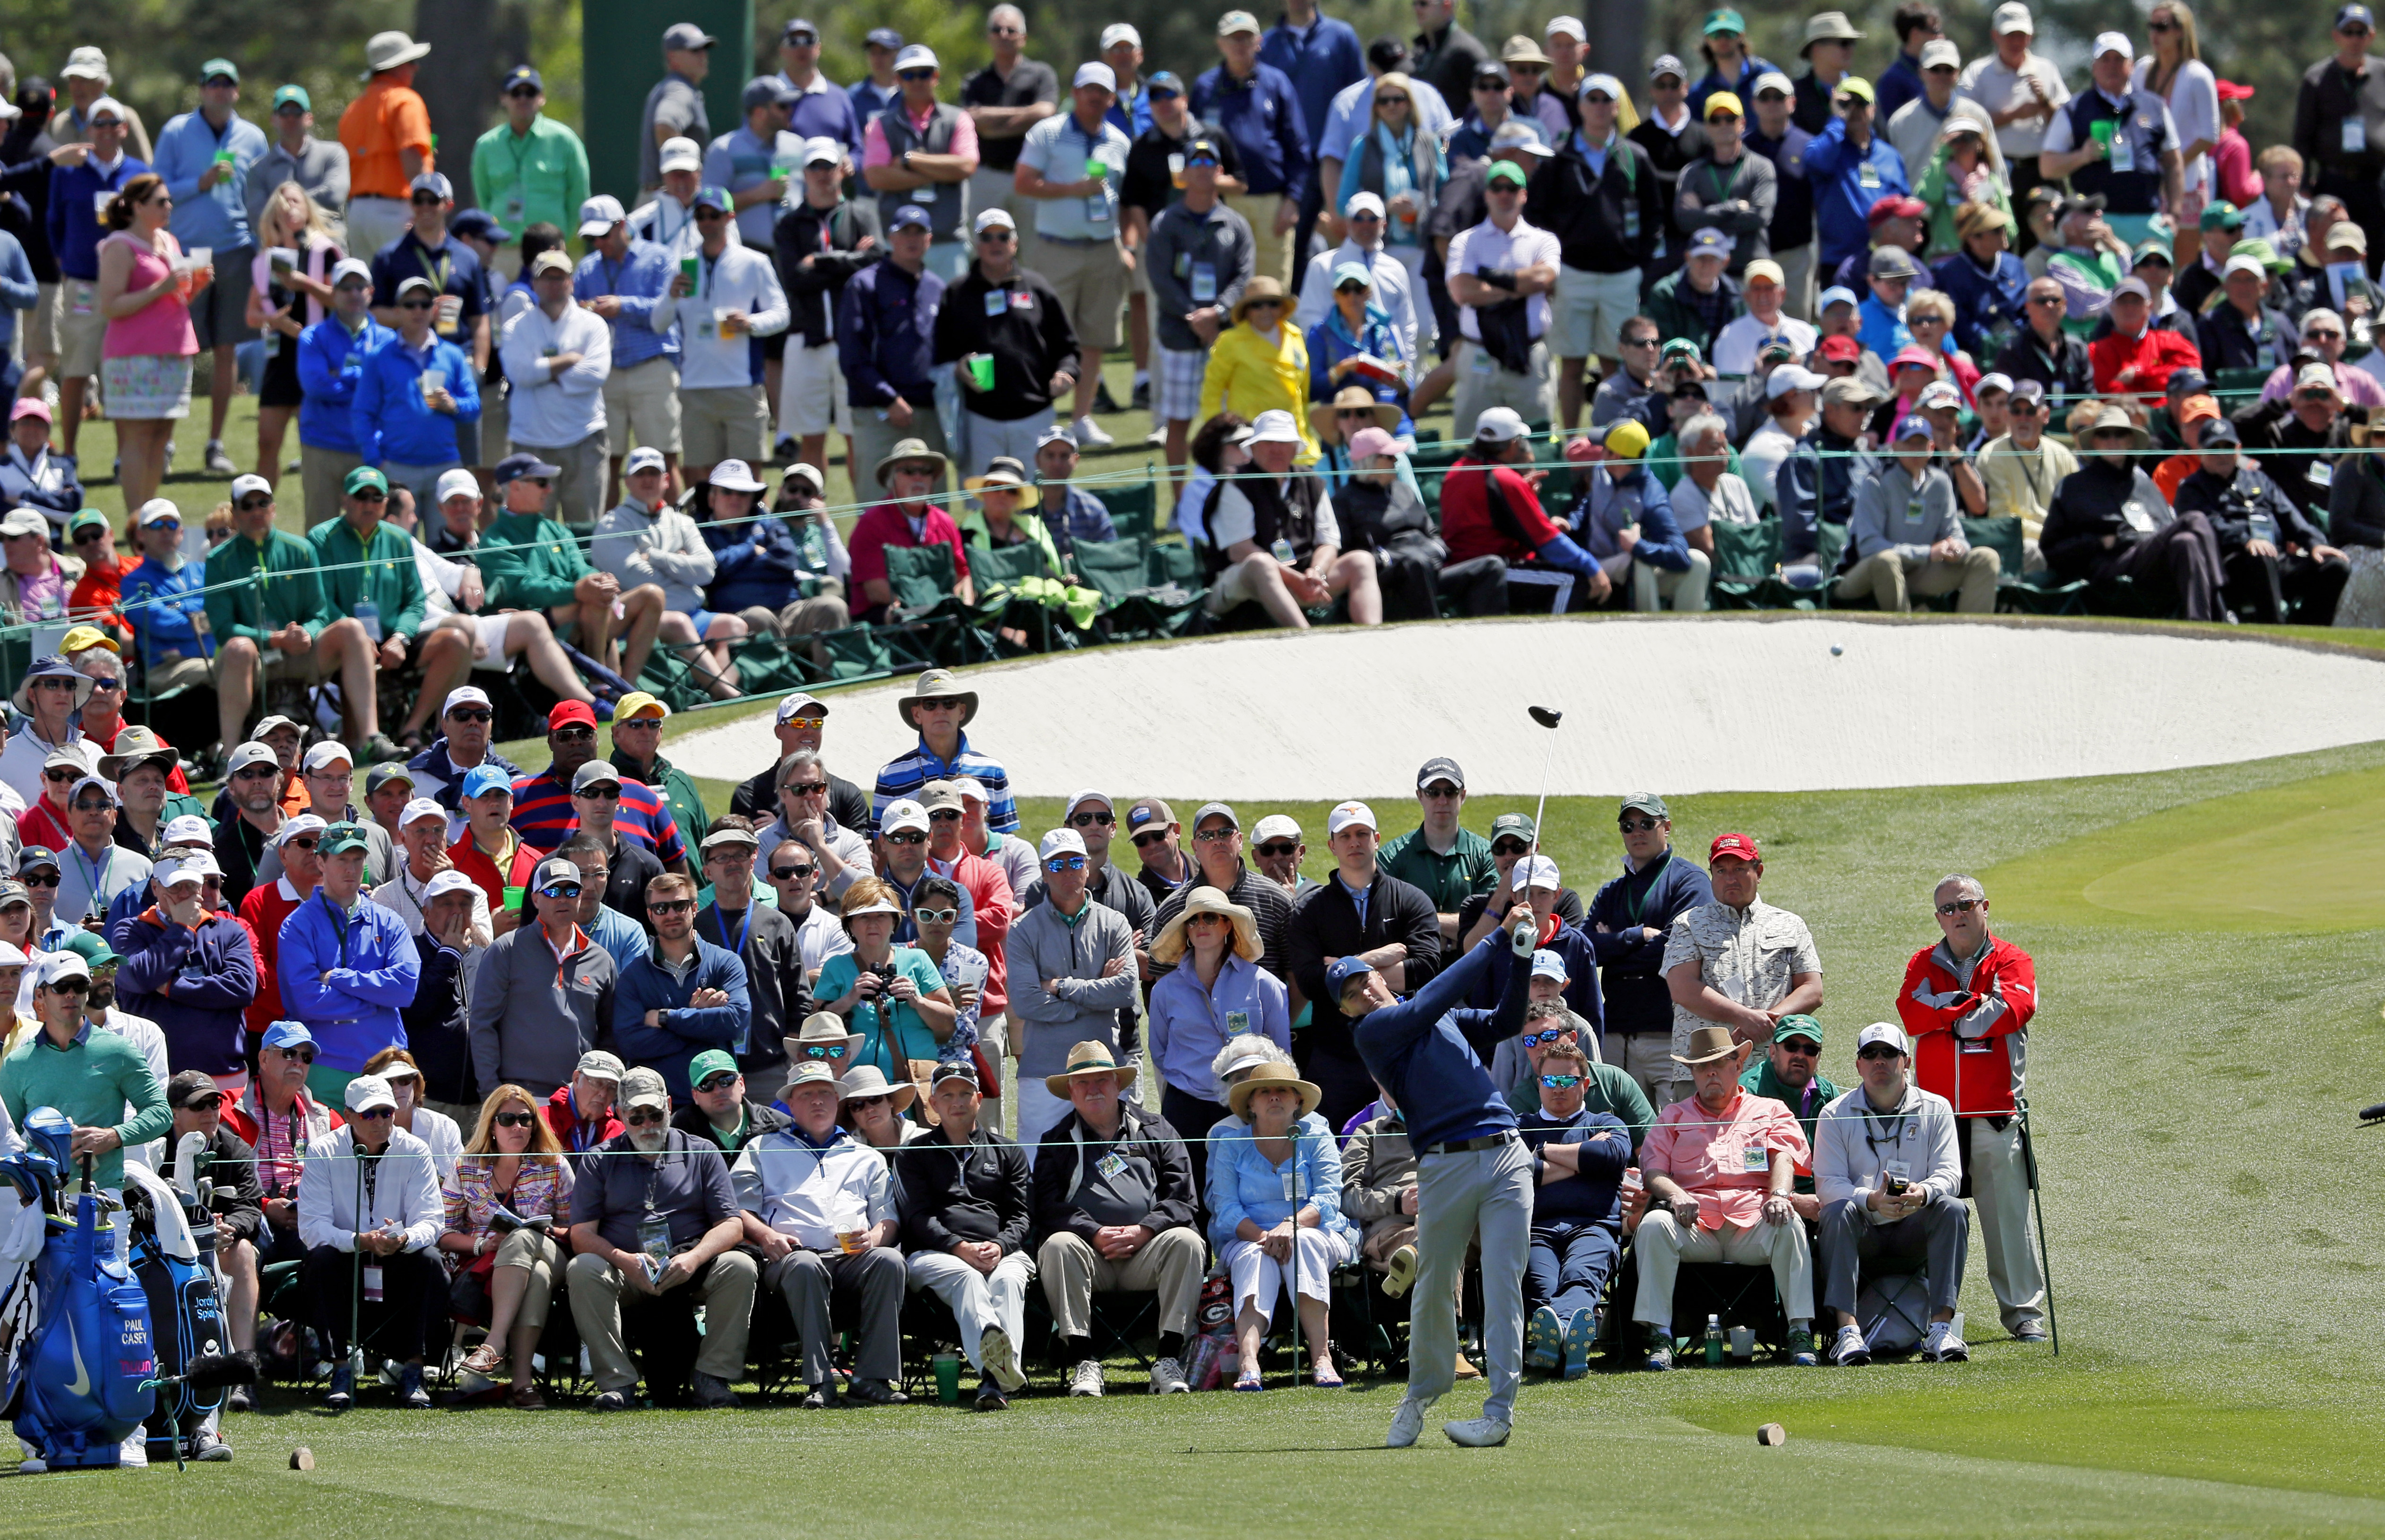 Jordan Spieth drives on the third hole during the second round of the Masters golf tournament Friday, April 8, 2016, in Augusta, Ga. (AP Photo/Matt Slocum)